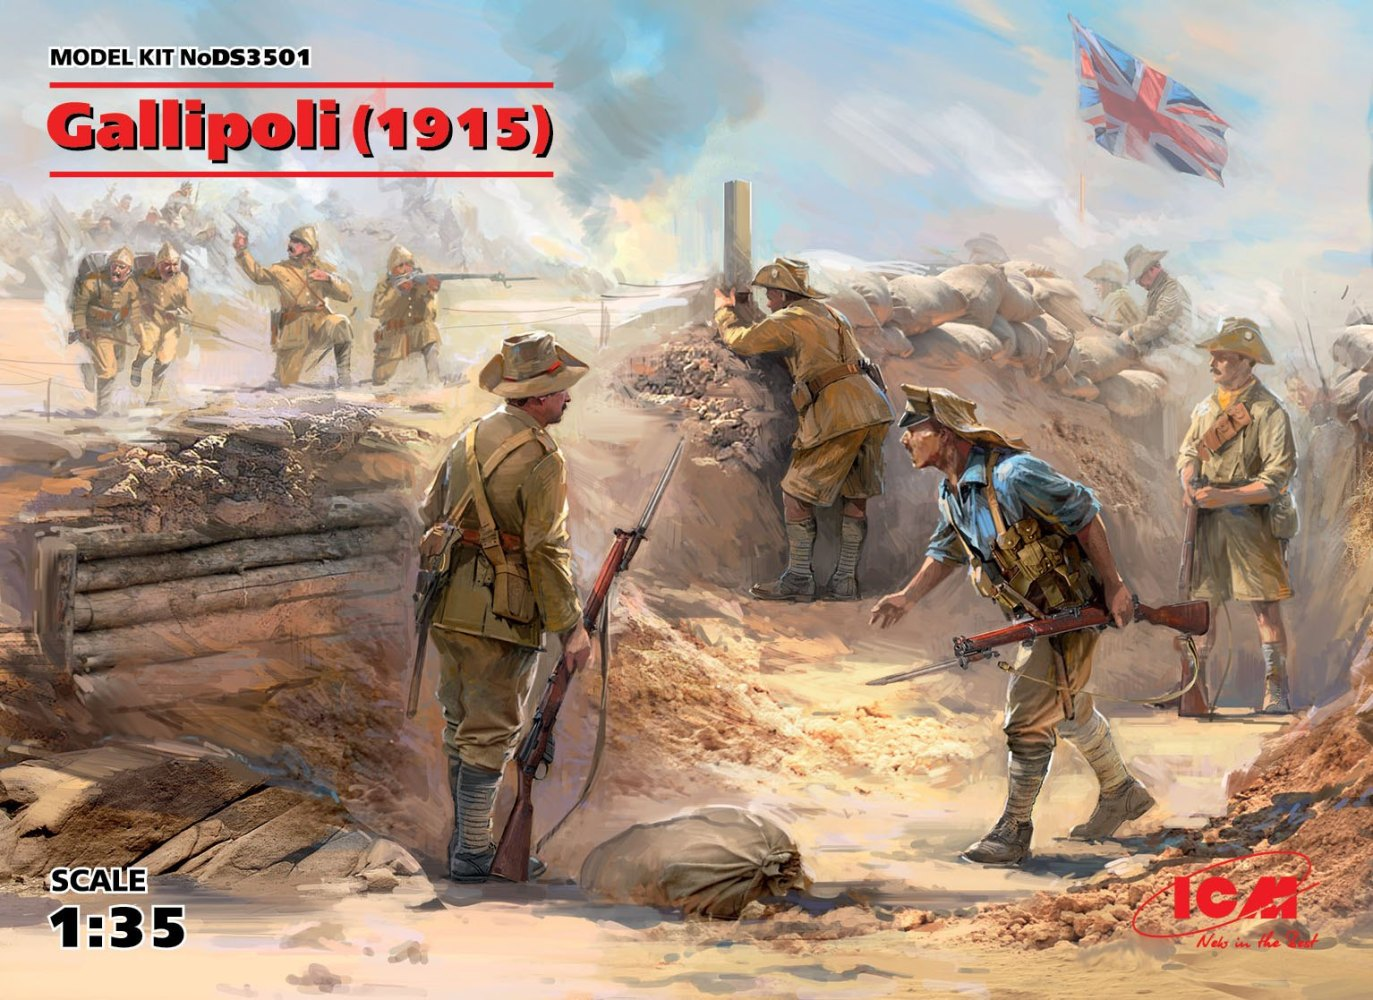 Gallipoli (1915)